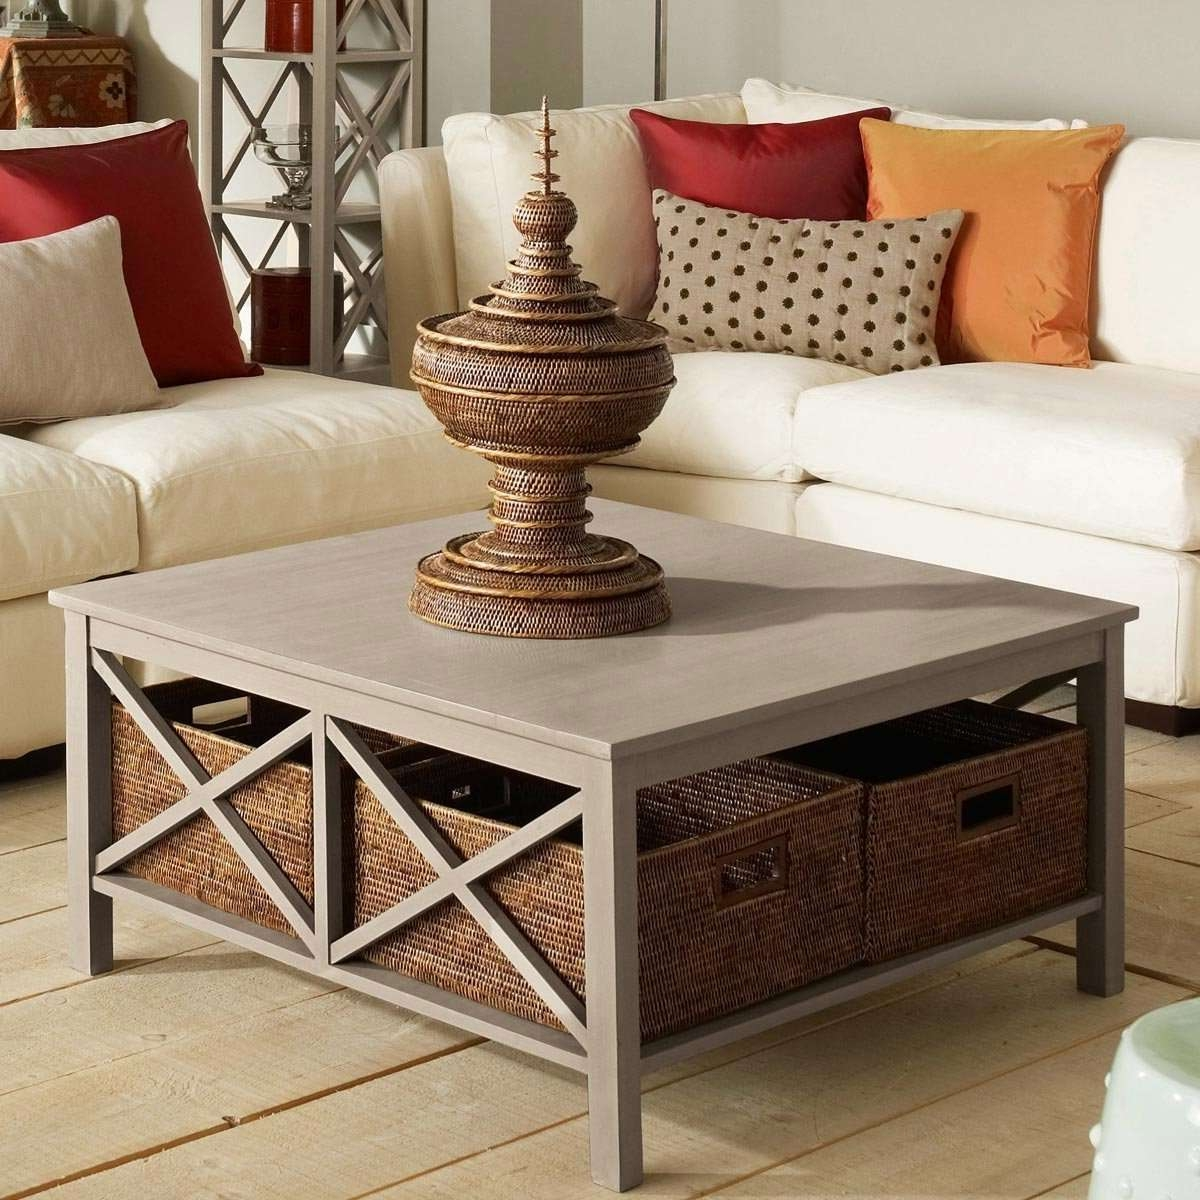 Square Coffee Table With Storage More Than One Function In One Throughout Well Known Square Coffee Tables With Storages (View 17 of 20)